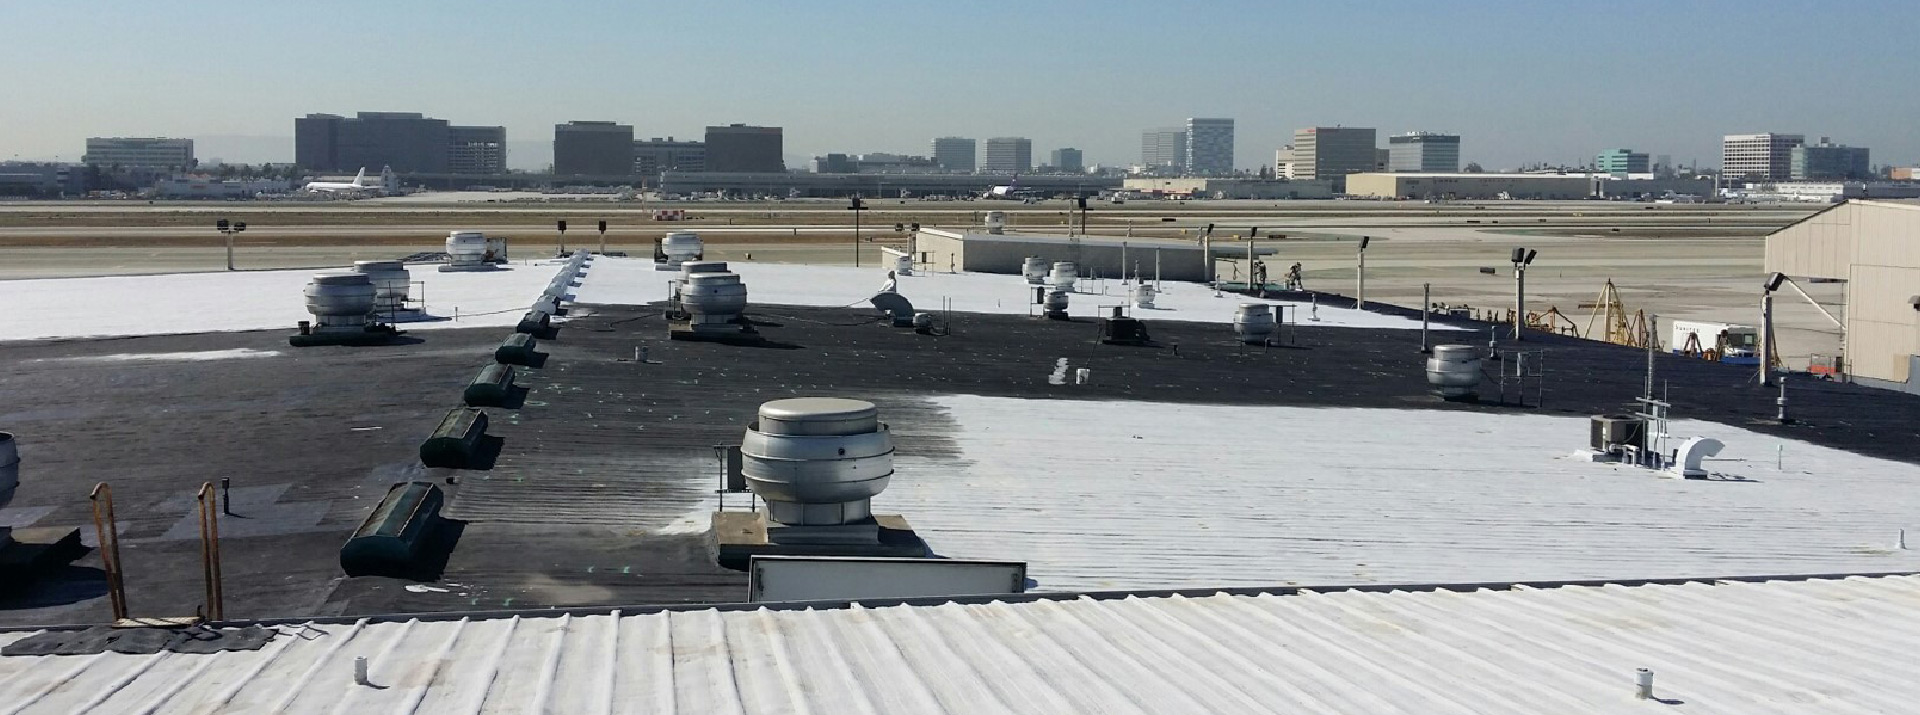 professional-commercial-roofing-service